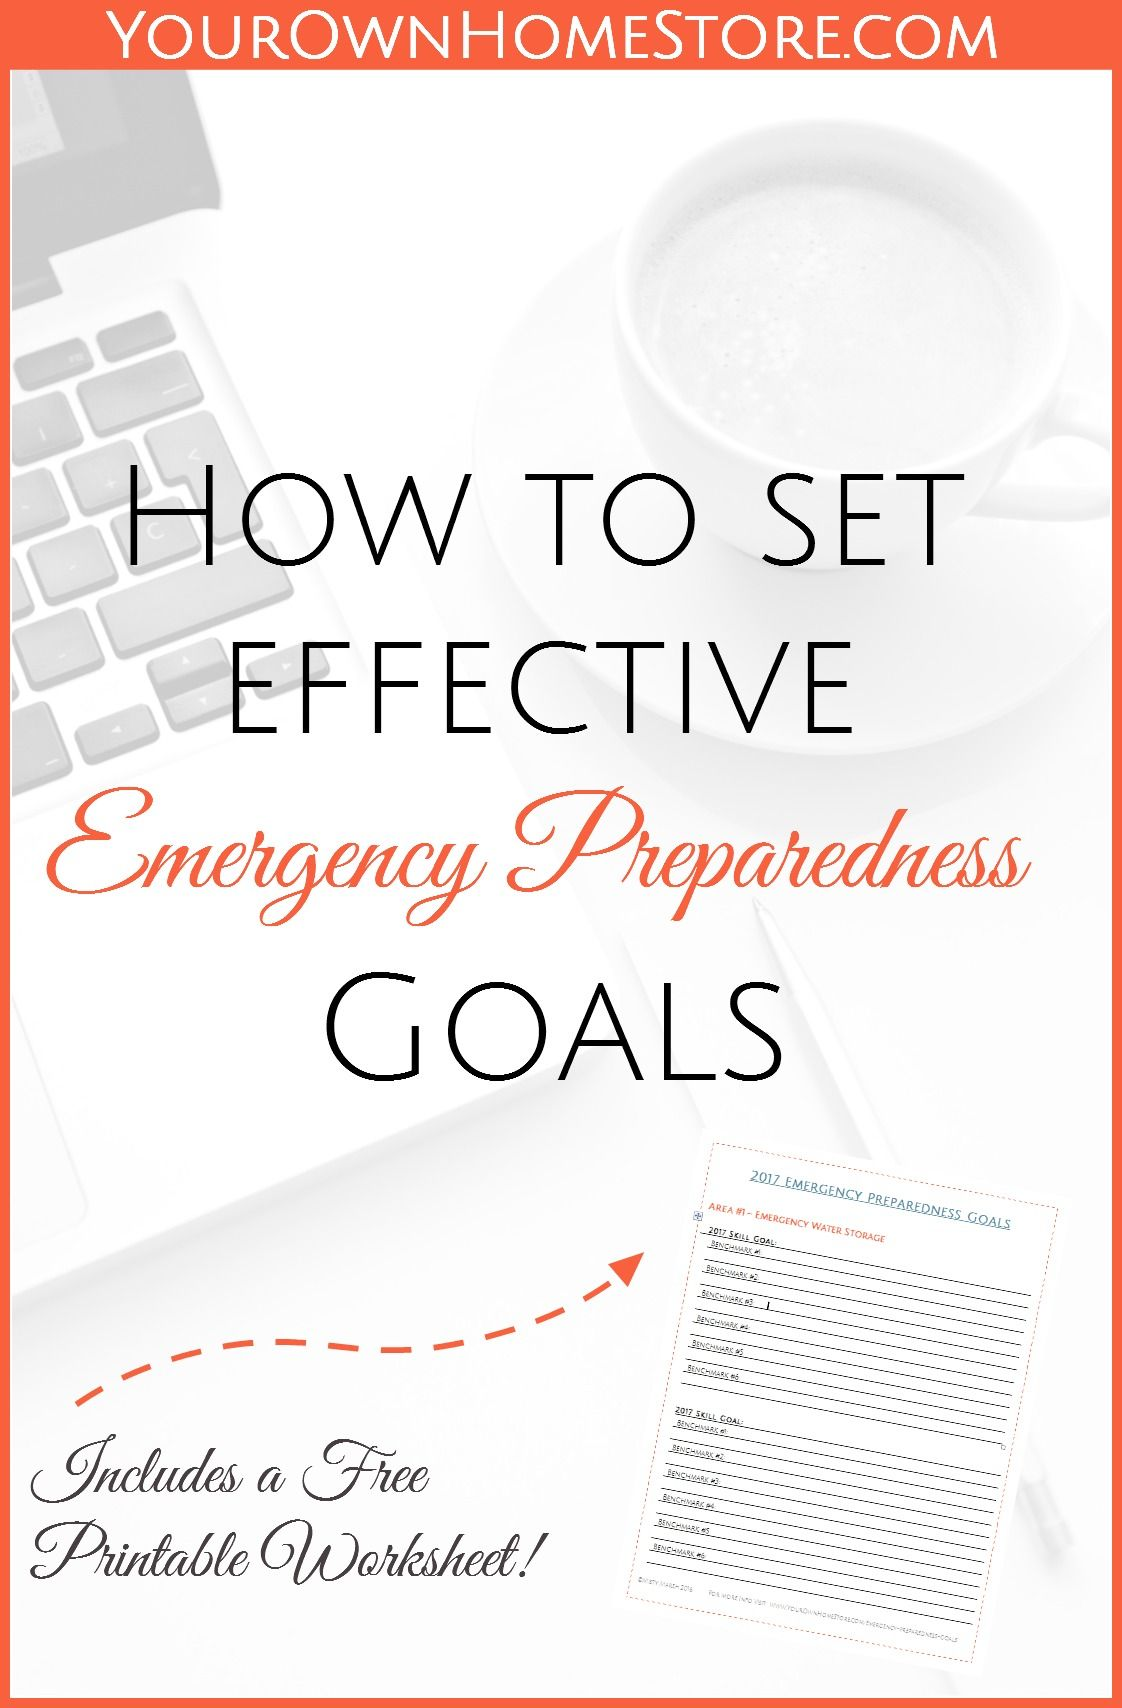 How To Set Effective Emergency Preparedness Goals